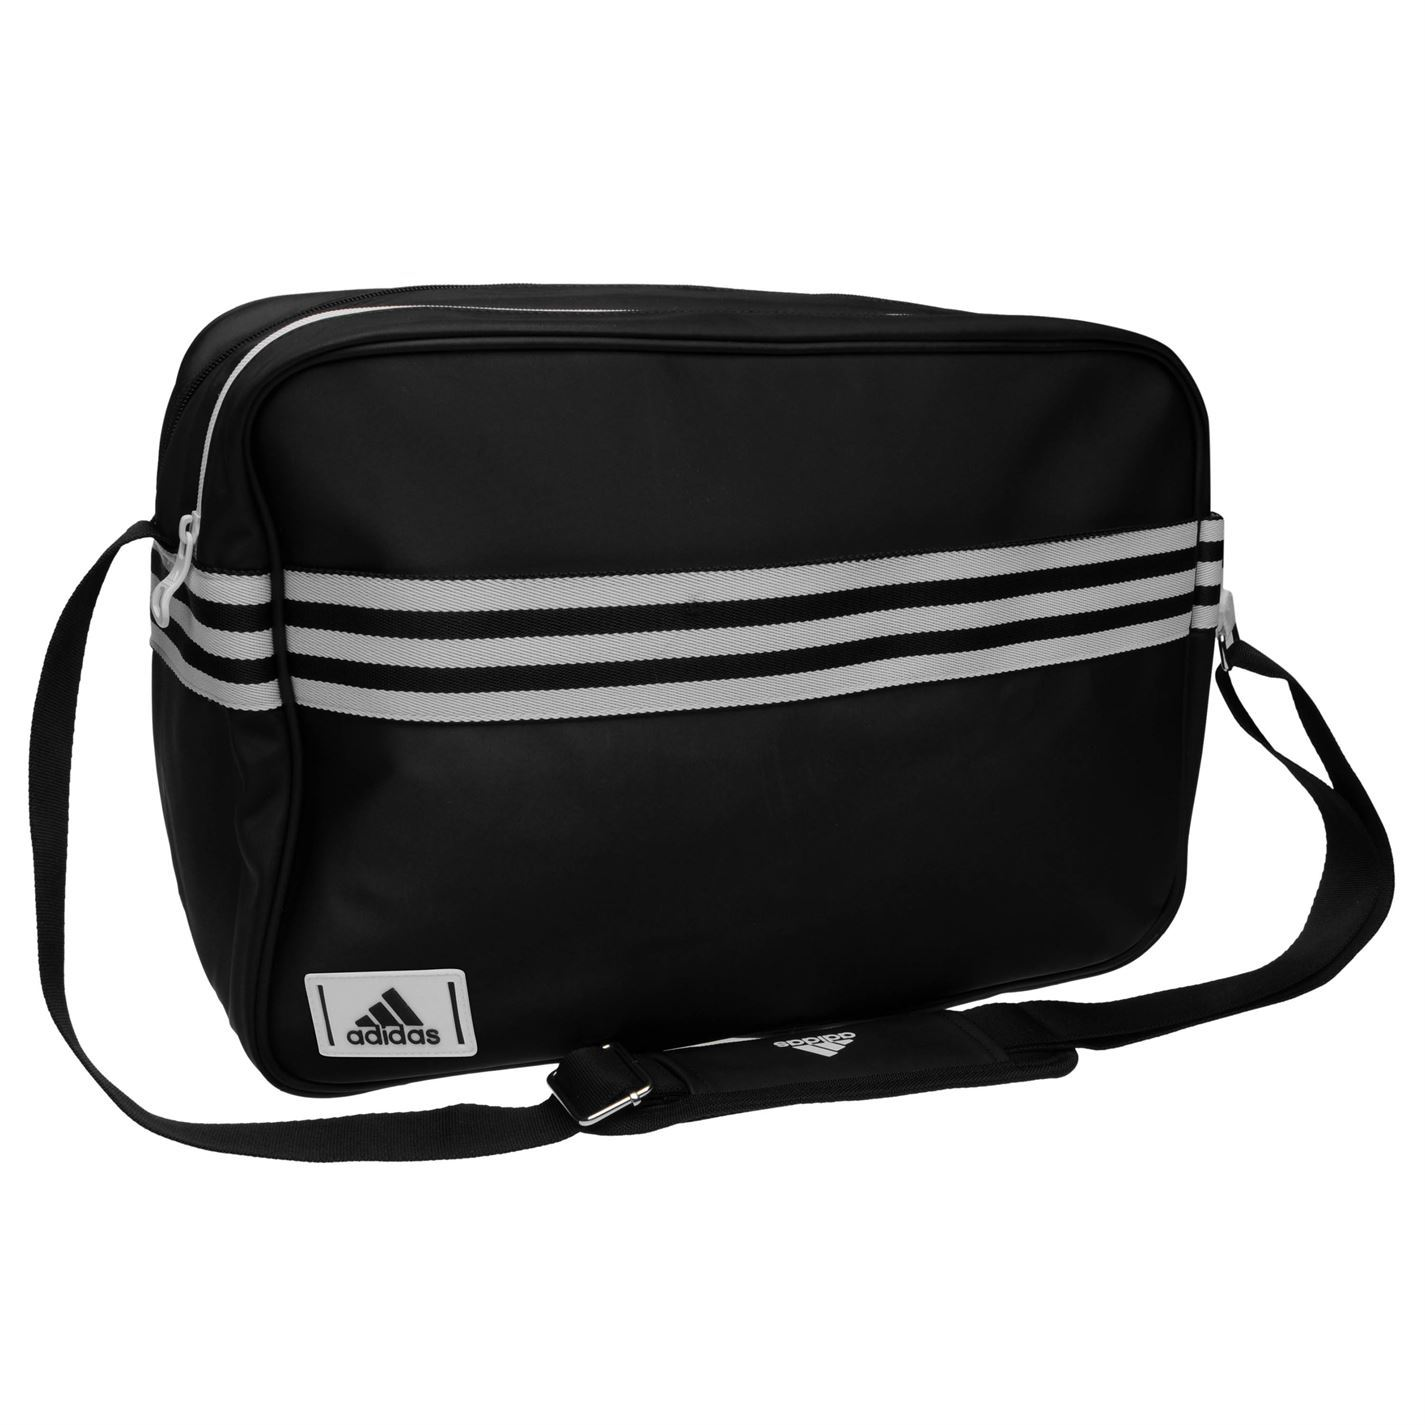 9561ec96ee ... Adidas Enamel Messenger Bag Medium Black White Sports Flight Bag Gymbag  Kitbag ...